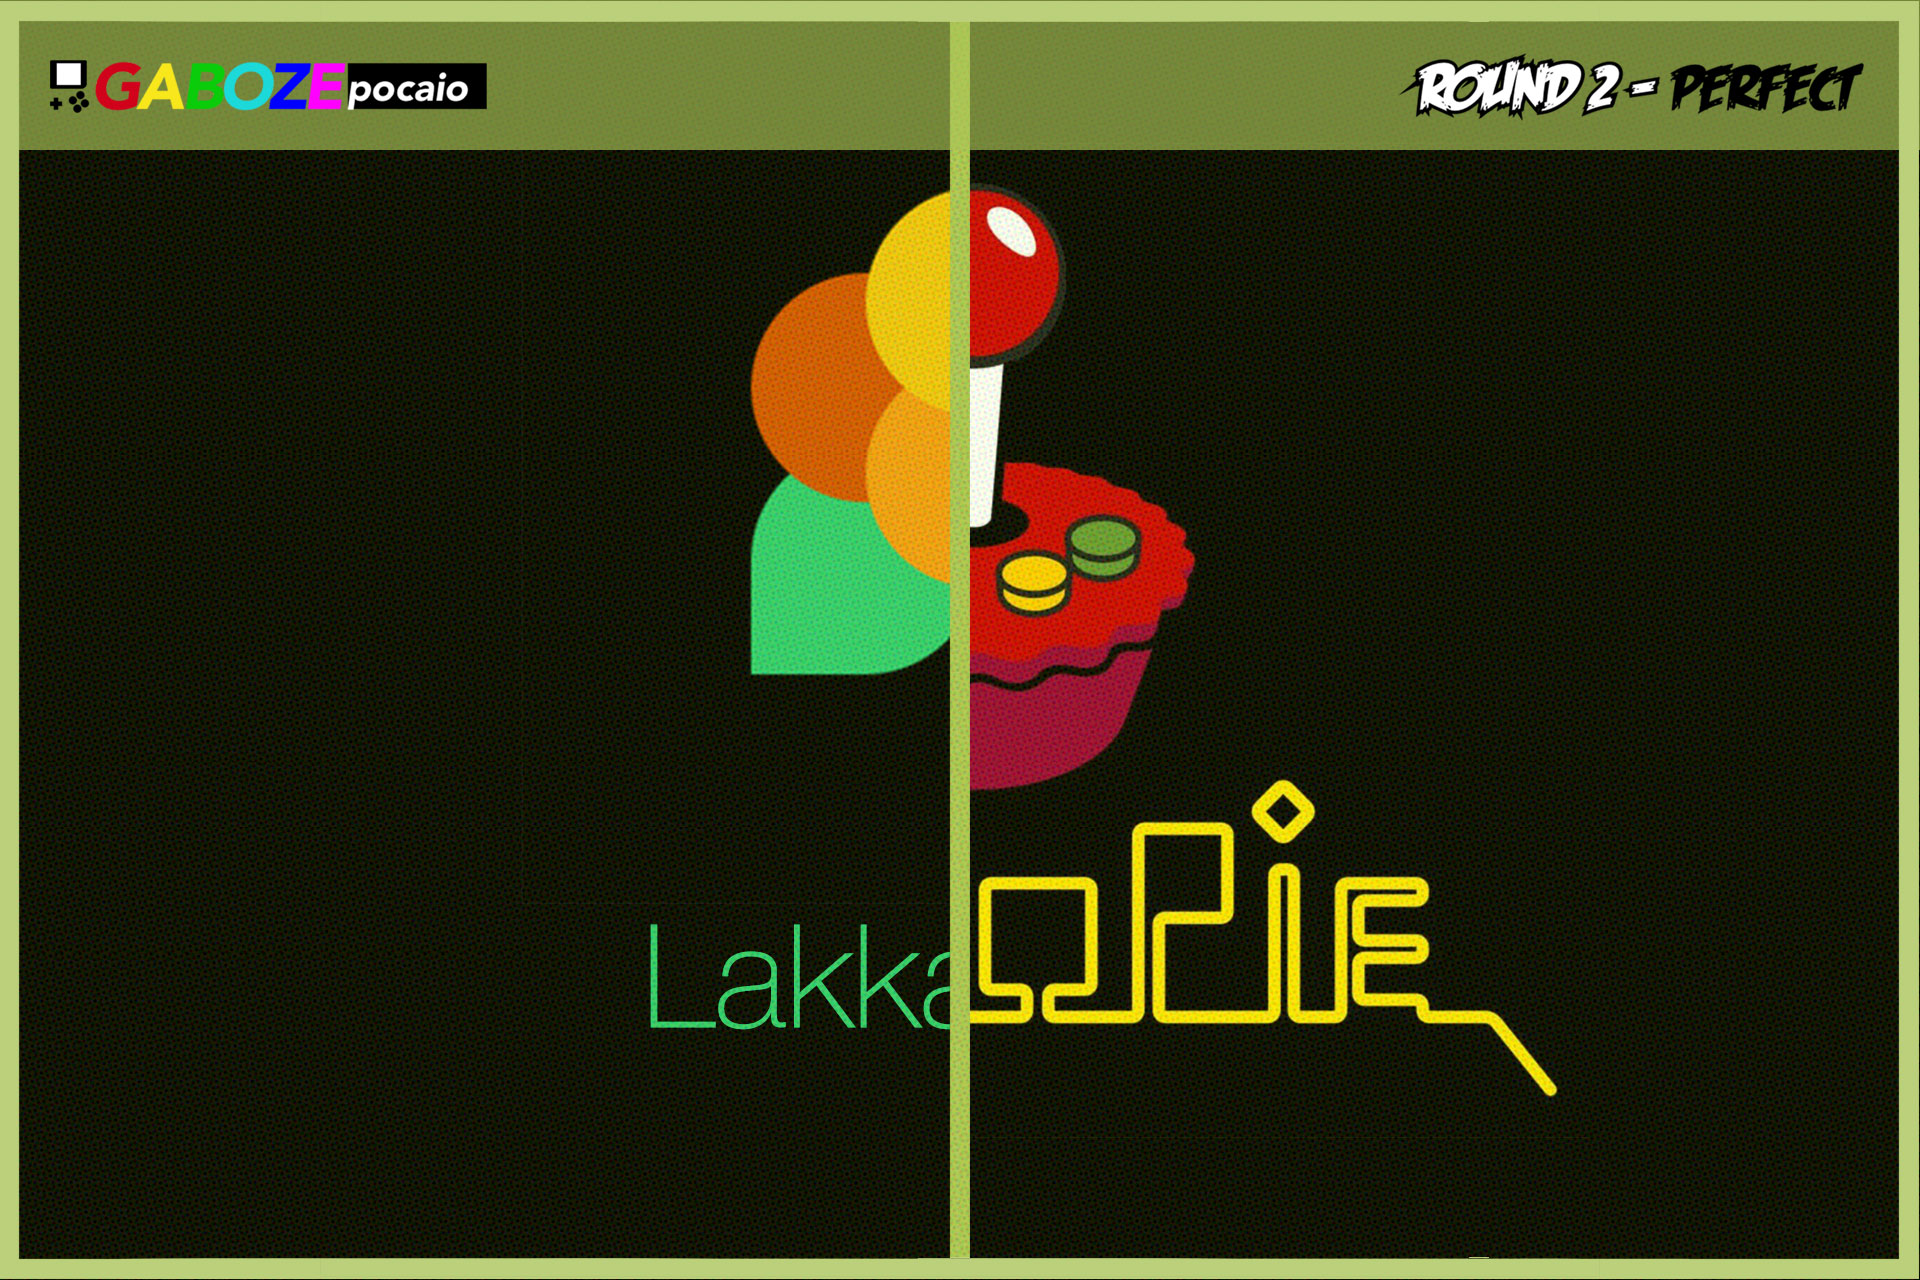 Lakka or RetroPie